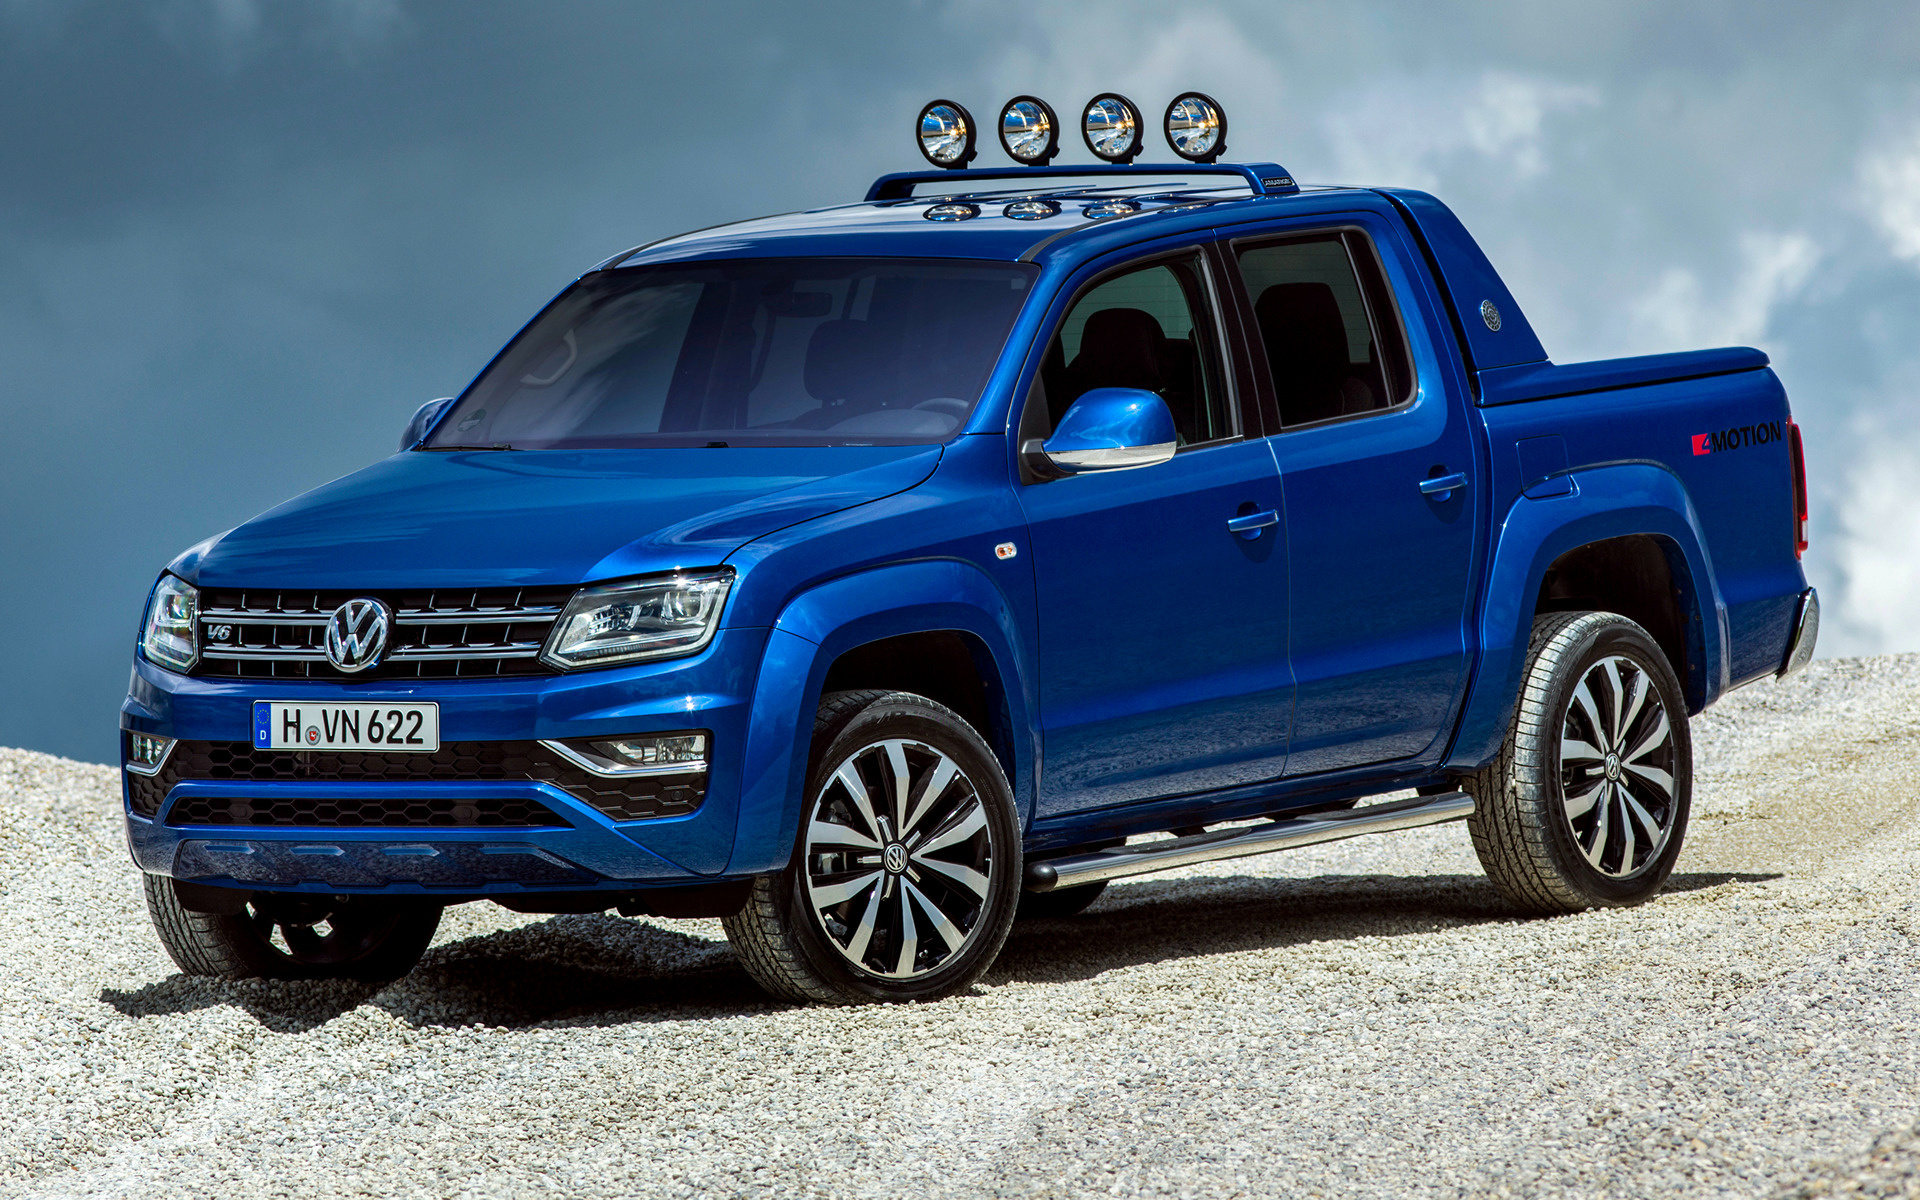 Genesis Car Wallpaper Volkswagen Amarok Aventura Double Cab 2016 Wallpapers